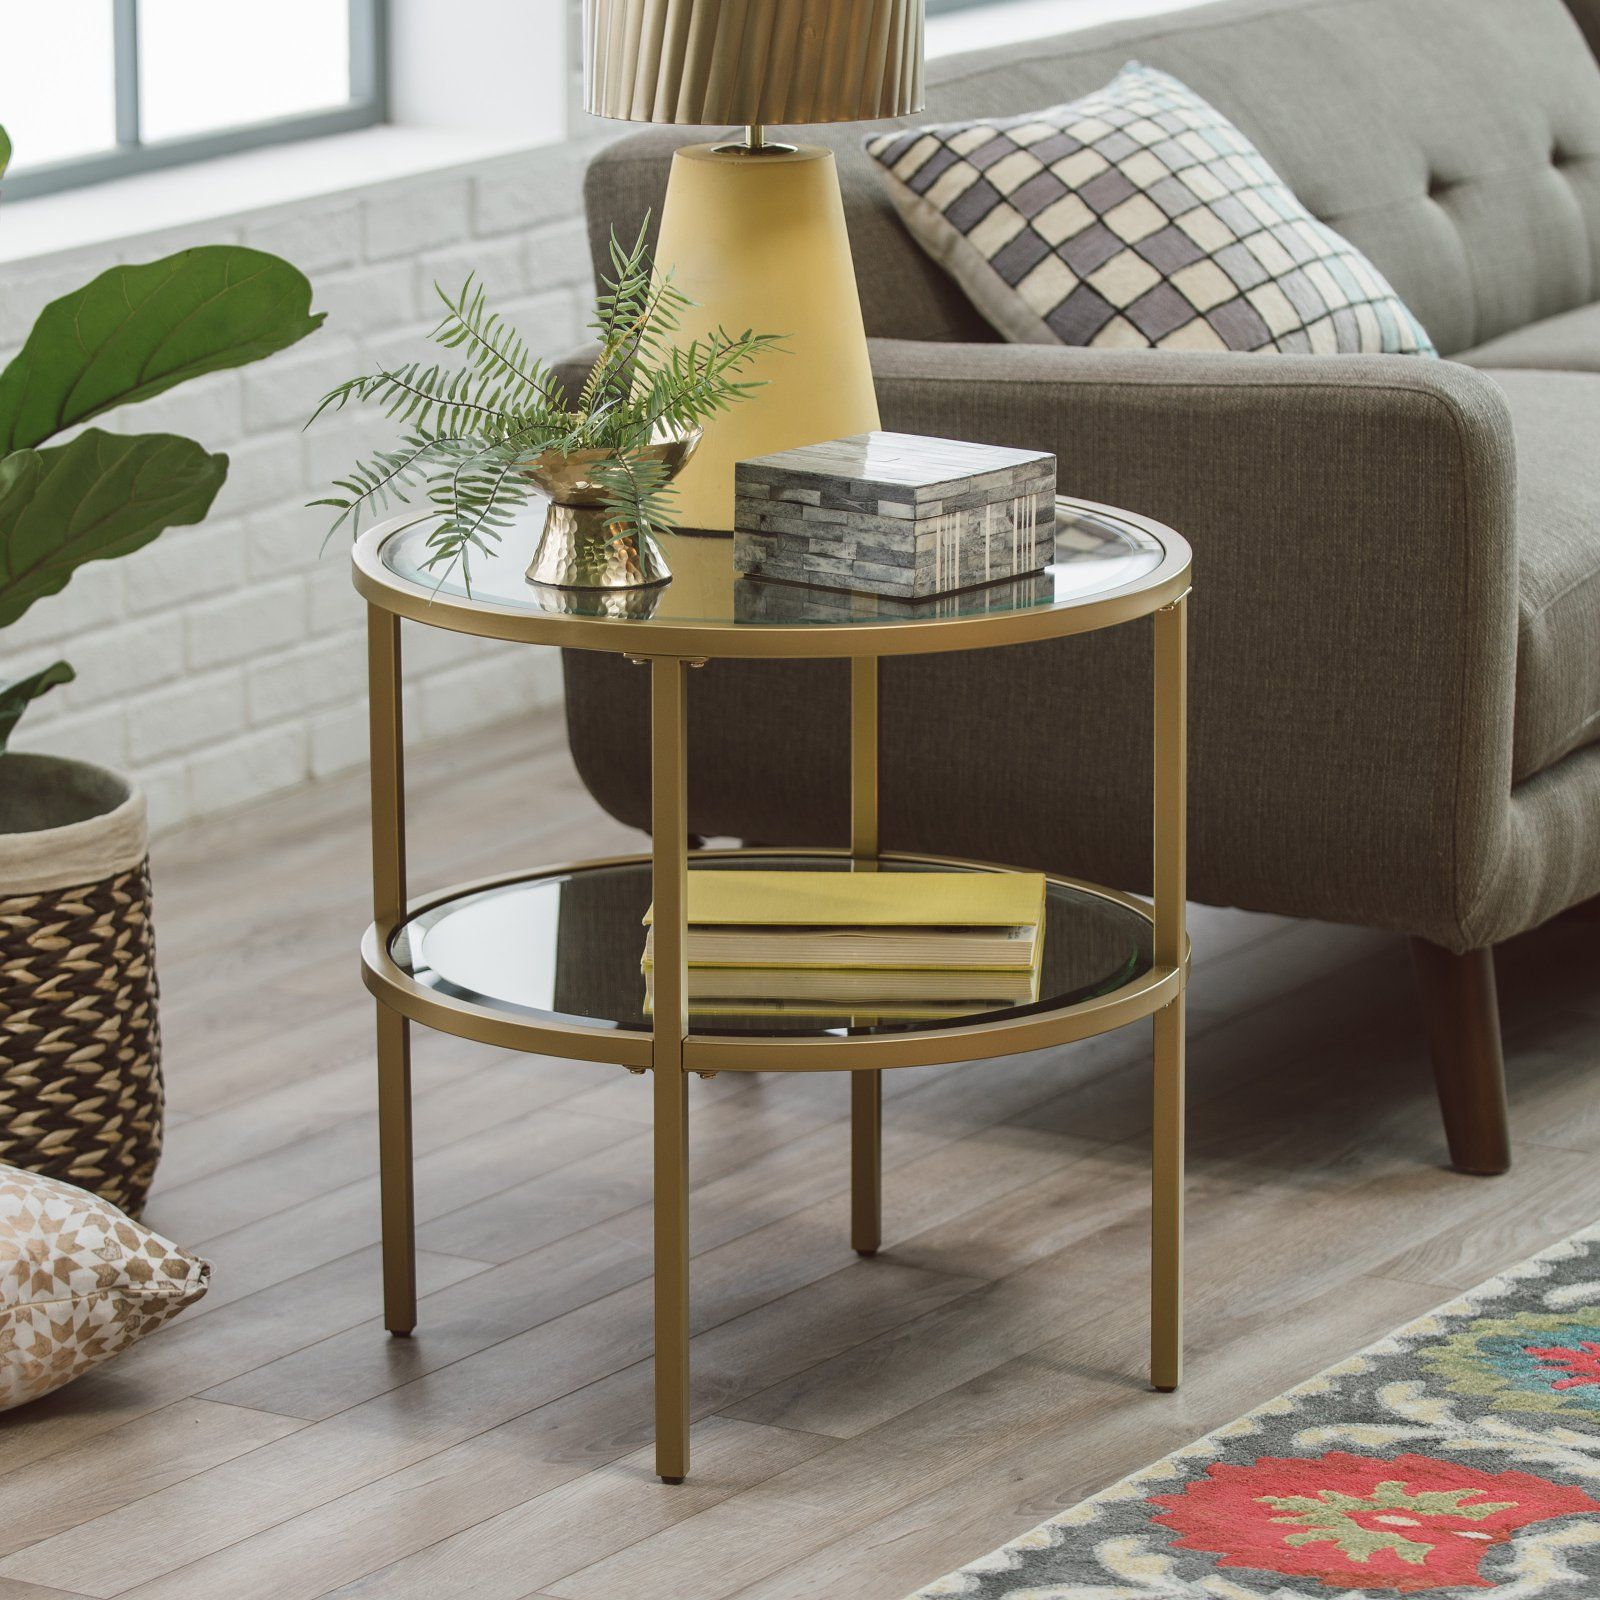 Belham Living Lamont Round End Table - Gold in 2019 | Table ...